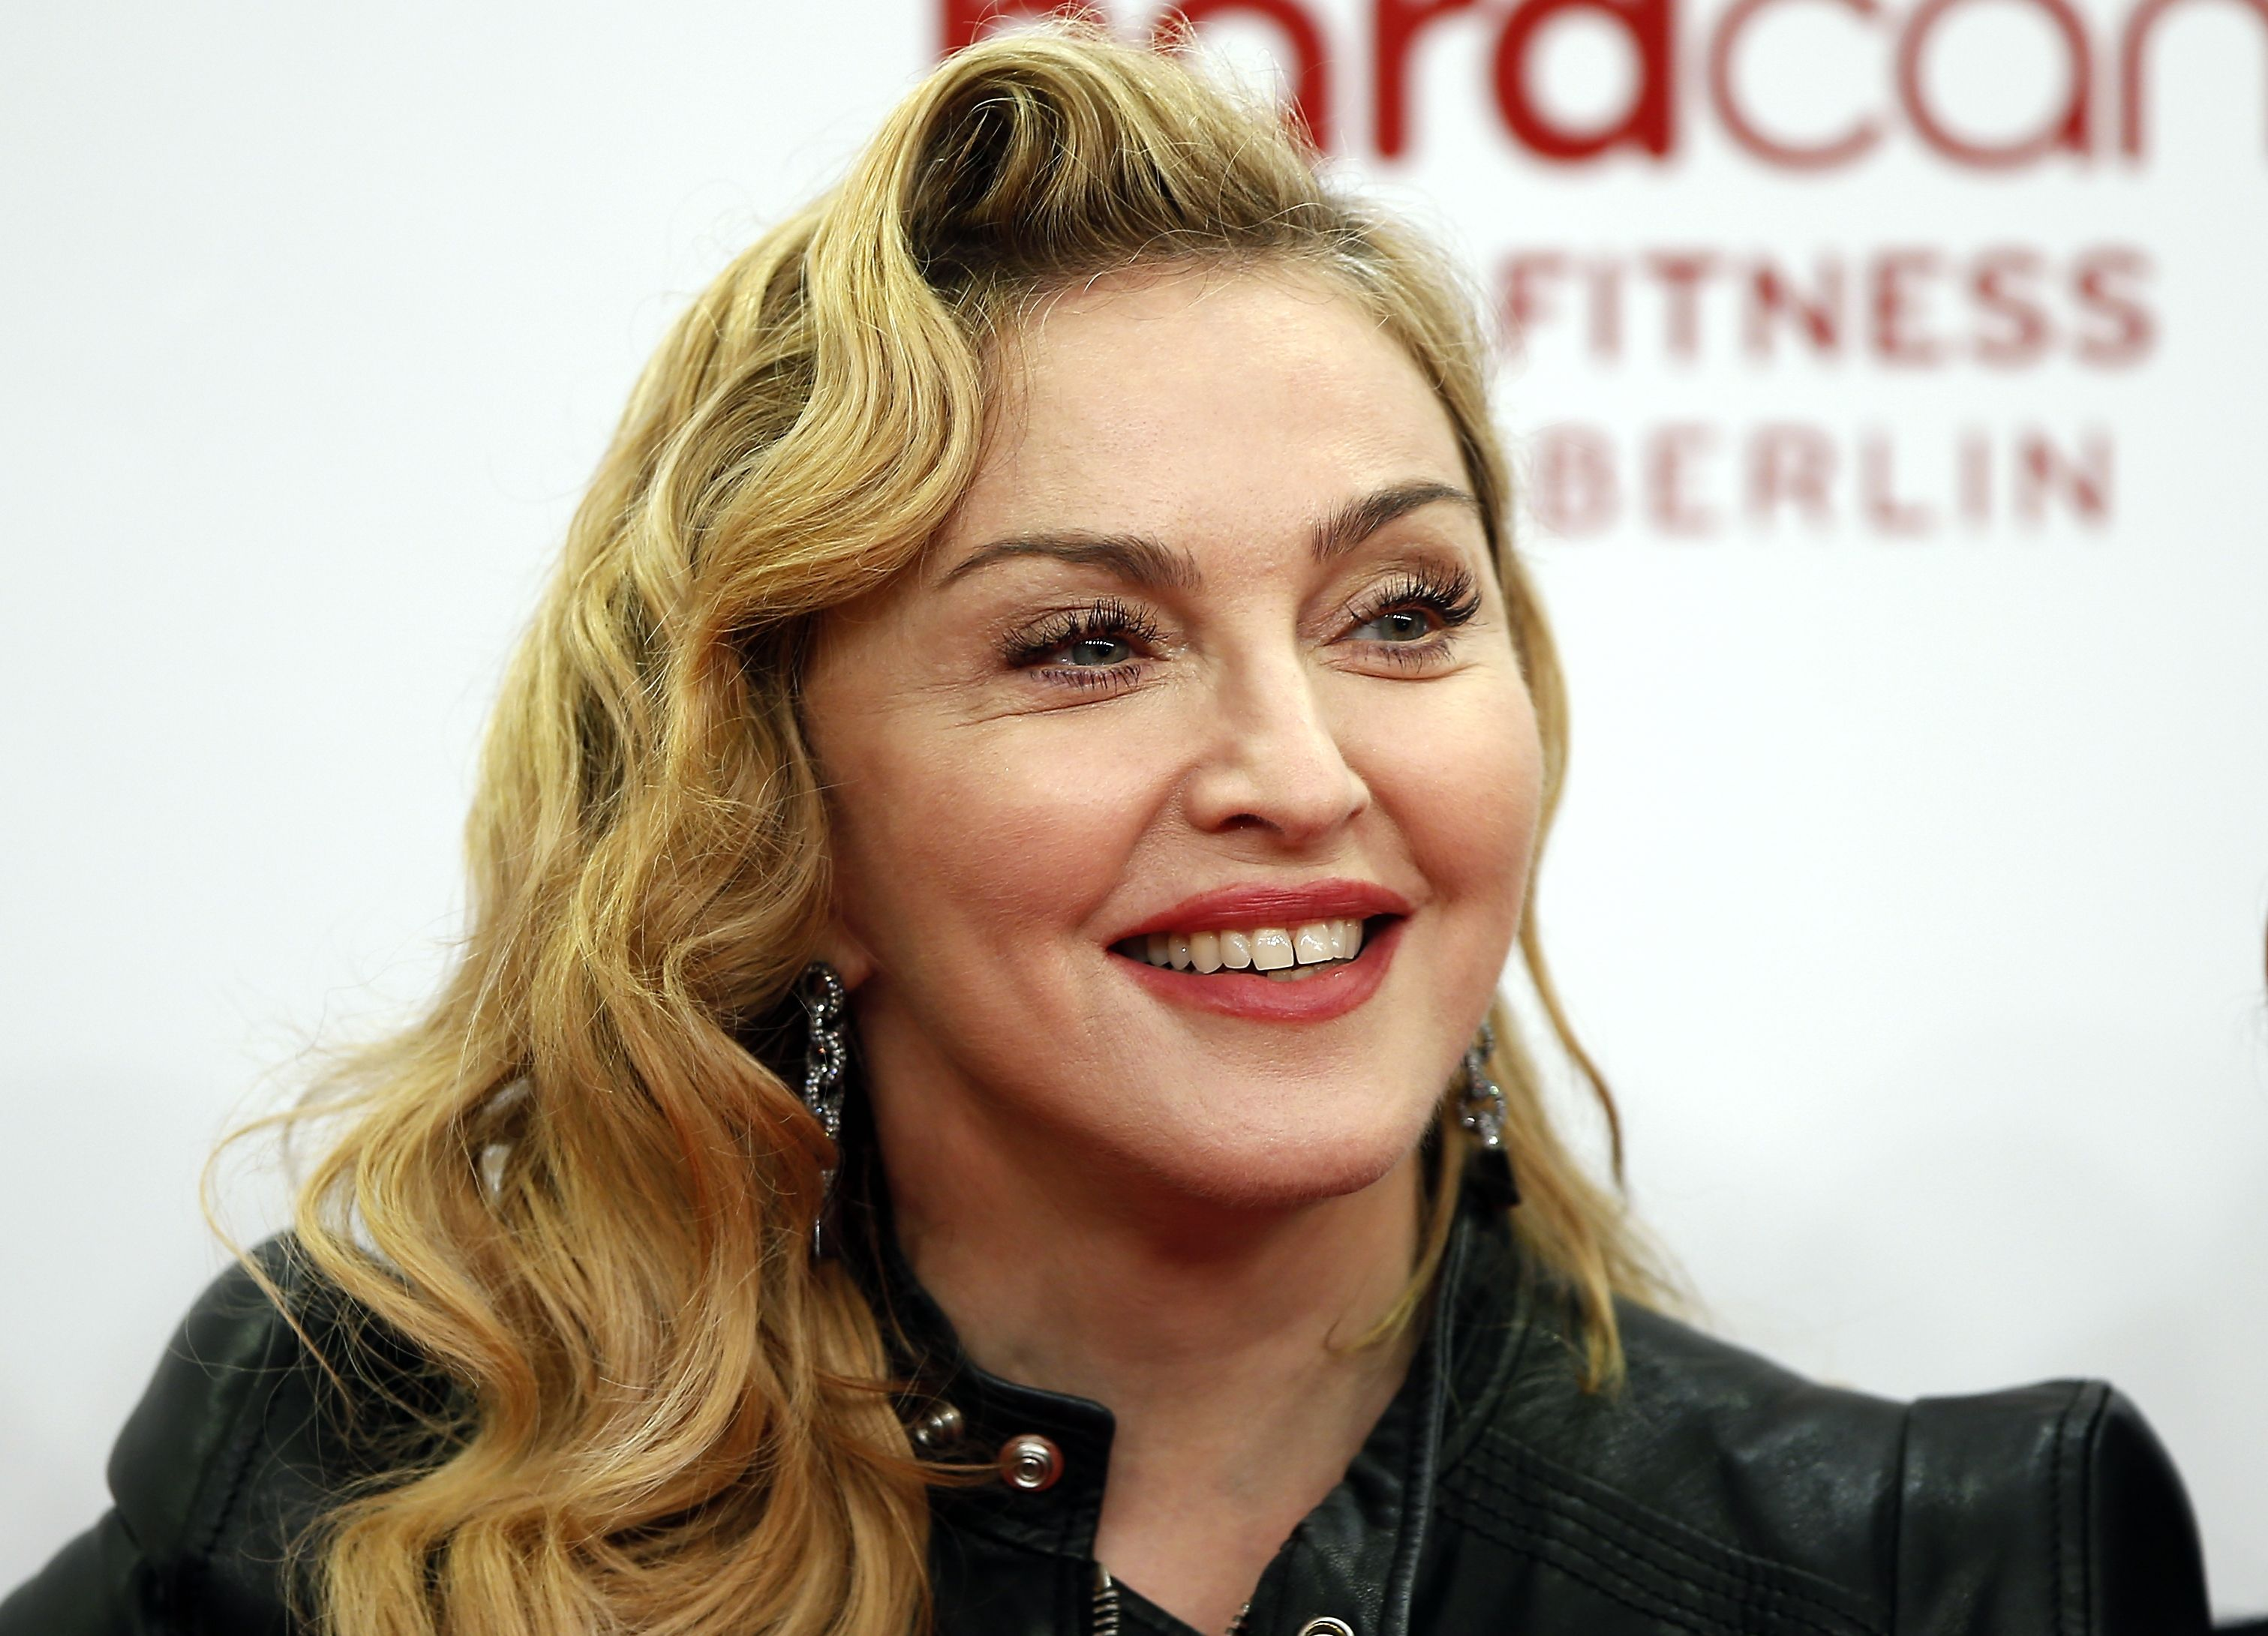 Madonna at Present Days 4303.77 Kb